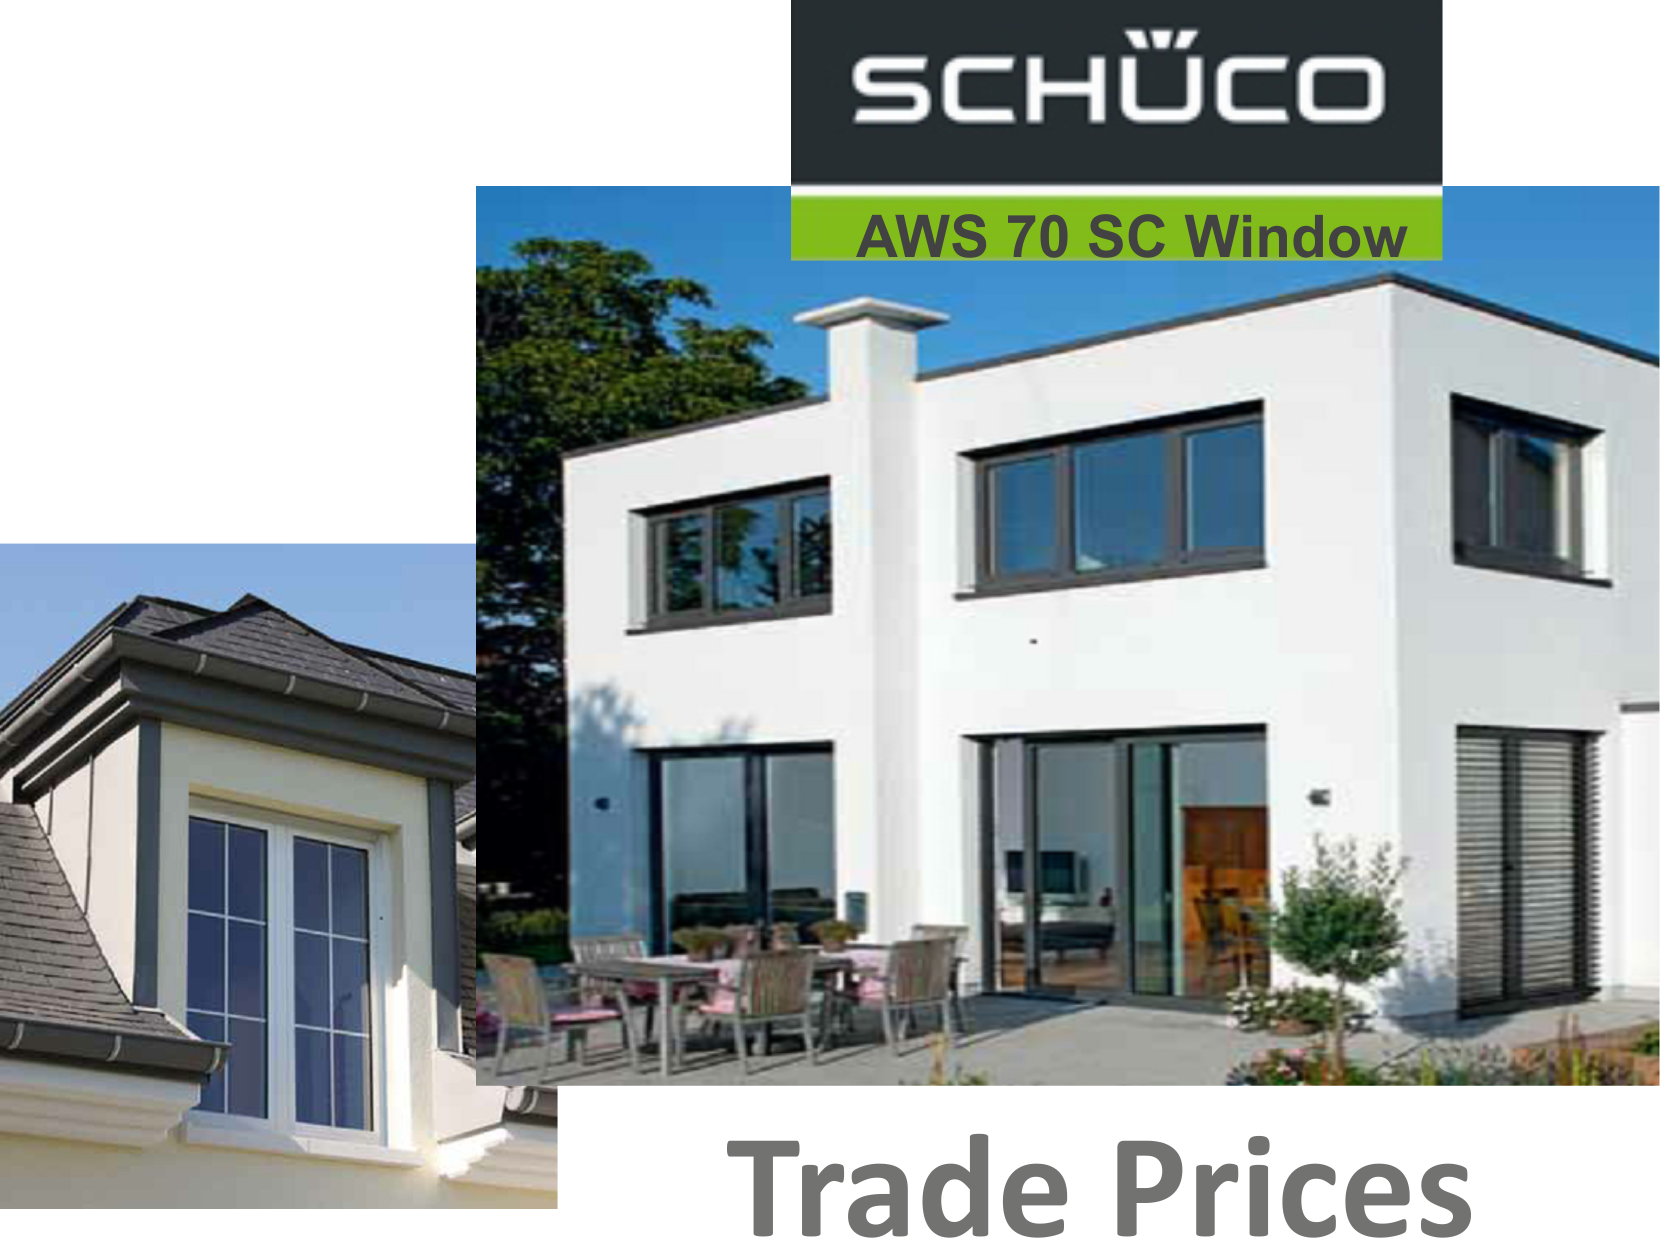 Schuco AWS 70 SC Window